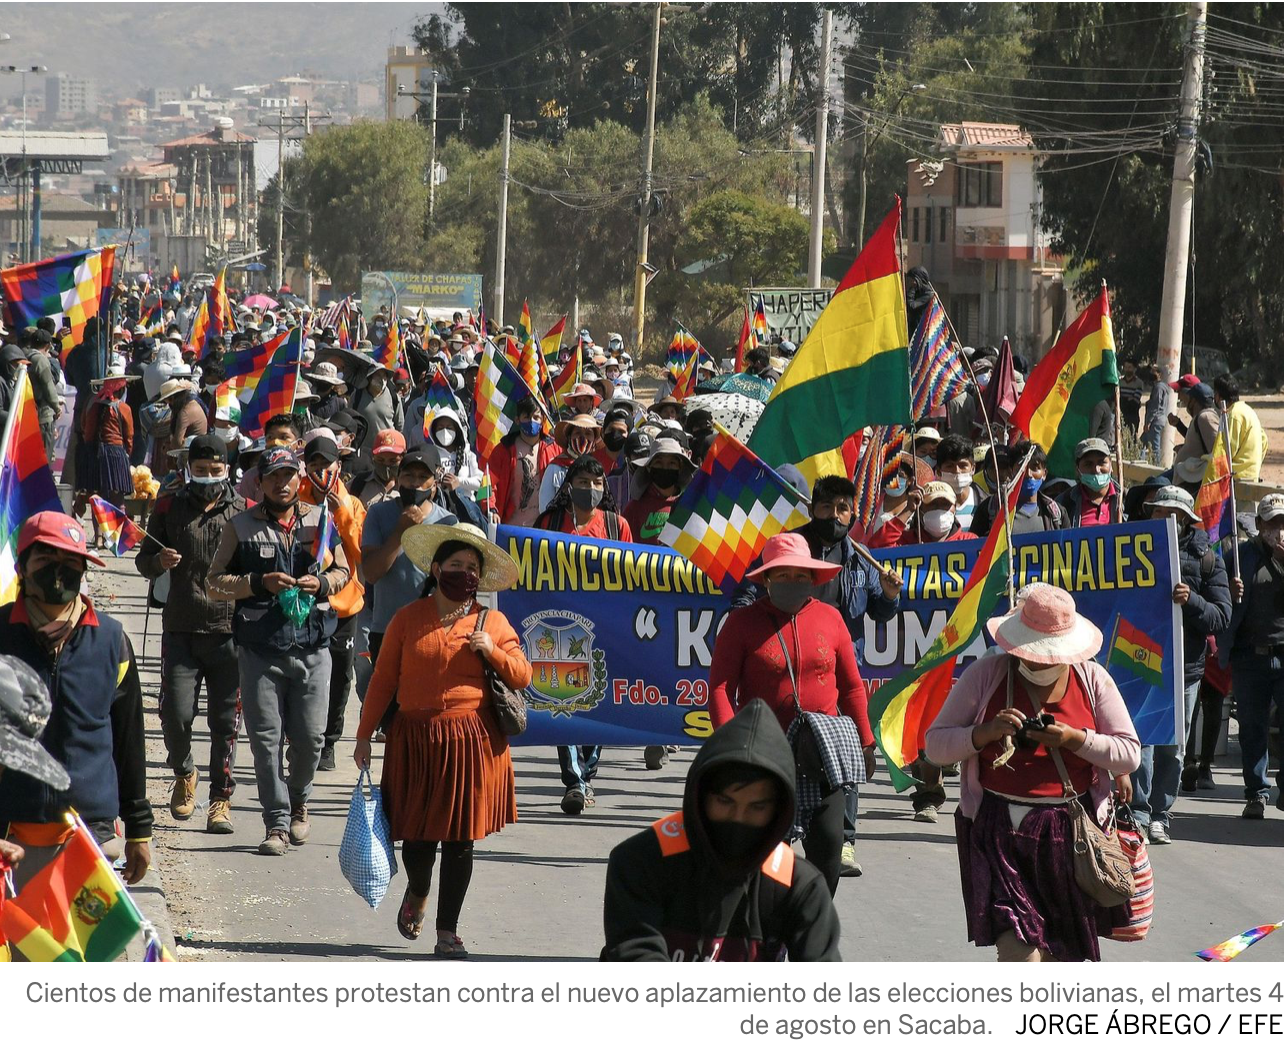 Report No 2 On Covid 19 In Latin America And The Caribbean Elections Postponed In Bolivia Once Again Diplawmatic Dialogues